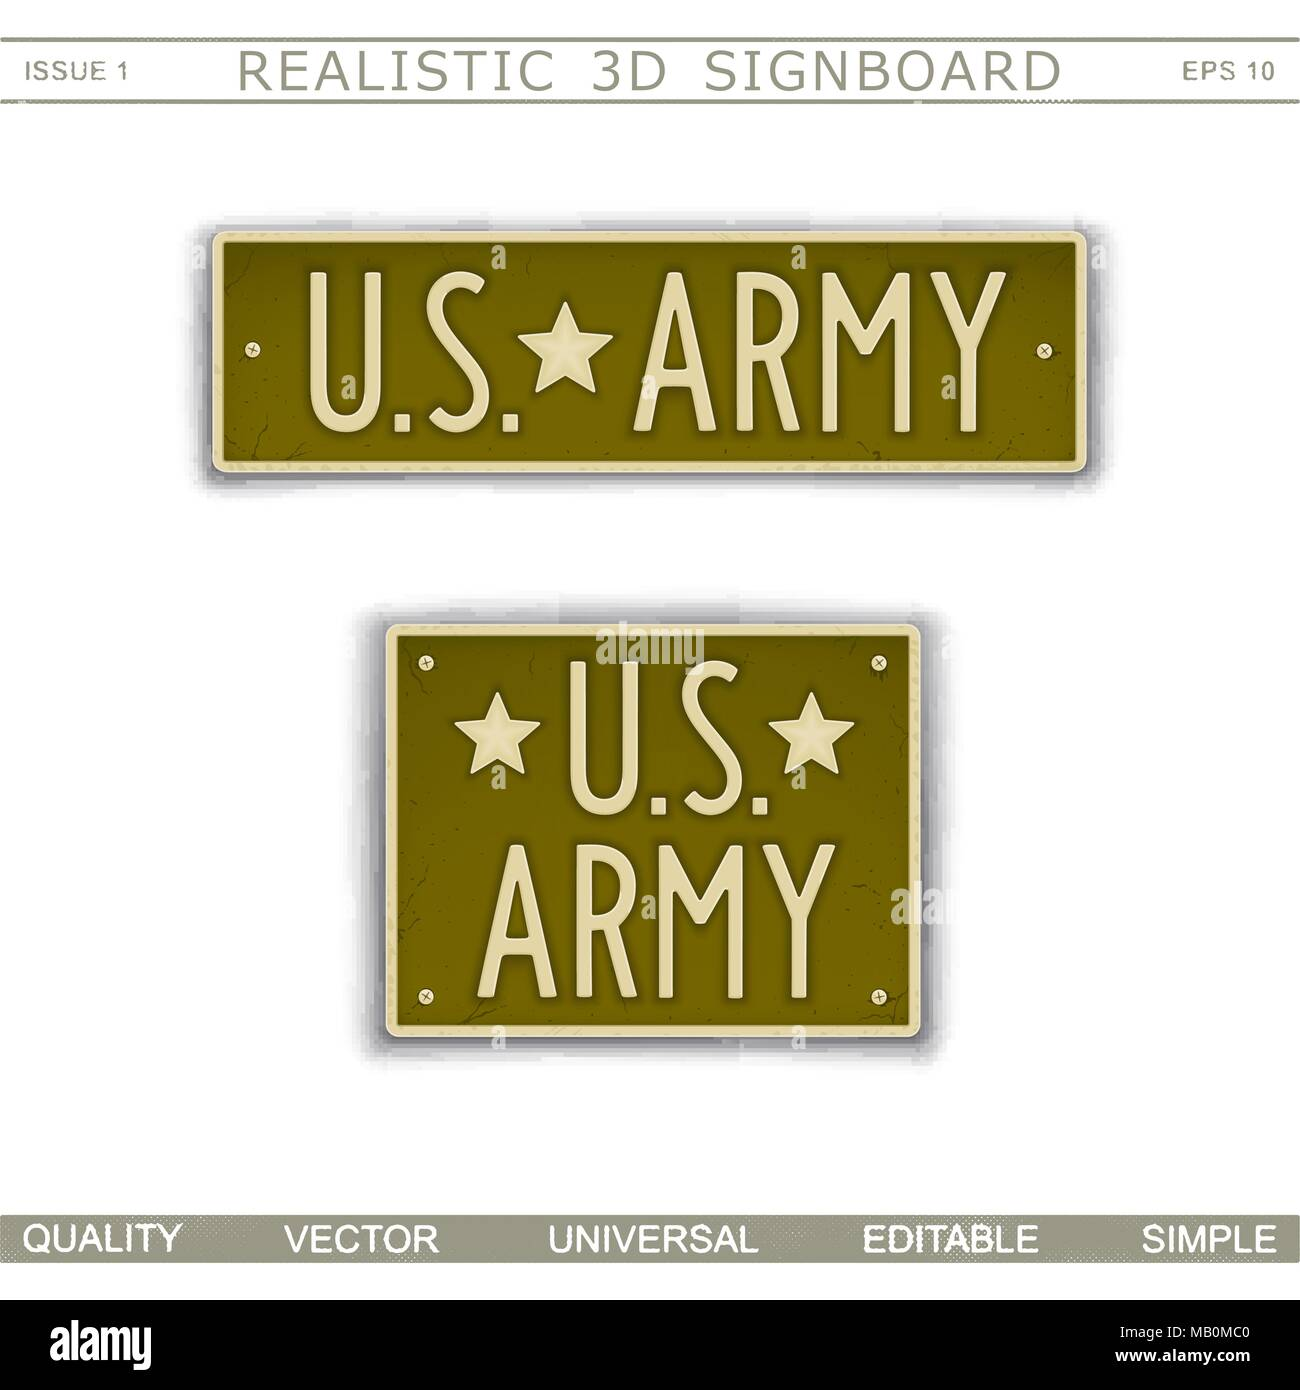 Military signboard. U.S. Army. Car license plate stylized. Lettering with the effect stamping. Vector design elements - Stock Vector